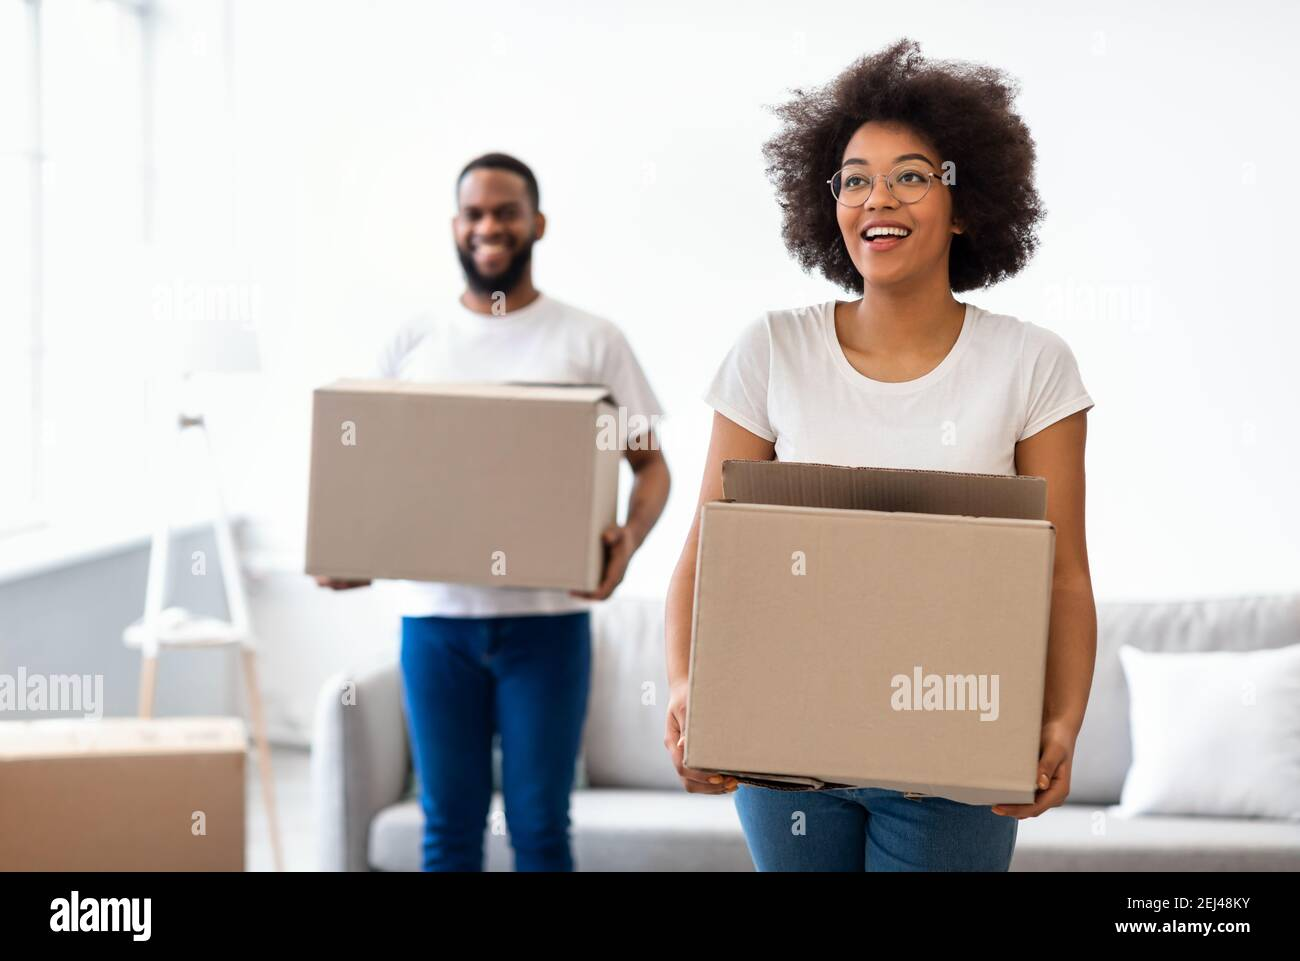 Joyful Black Spouses Carrying Moving Boxes Entering New Home Together Stock Photo